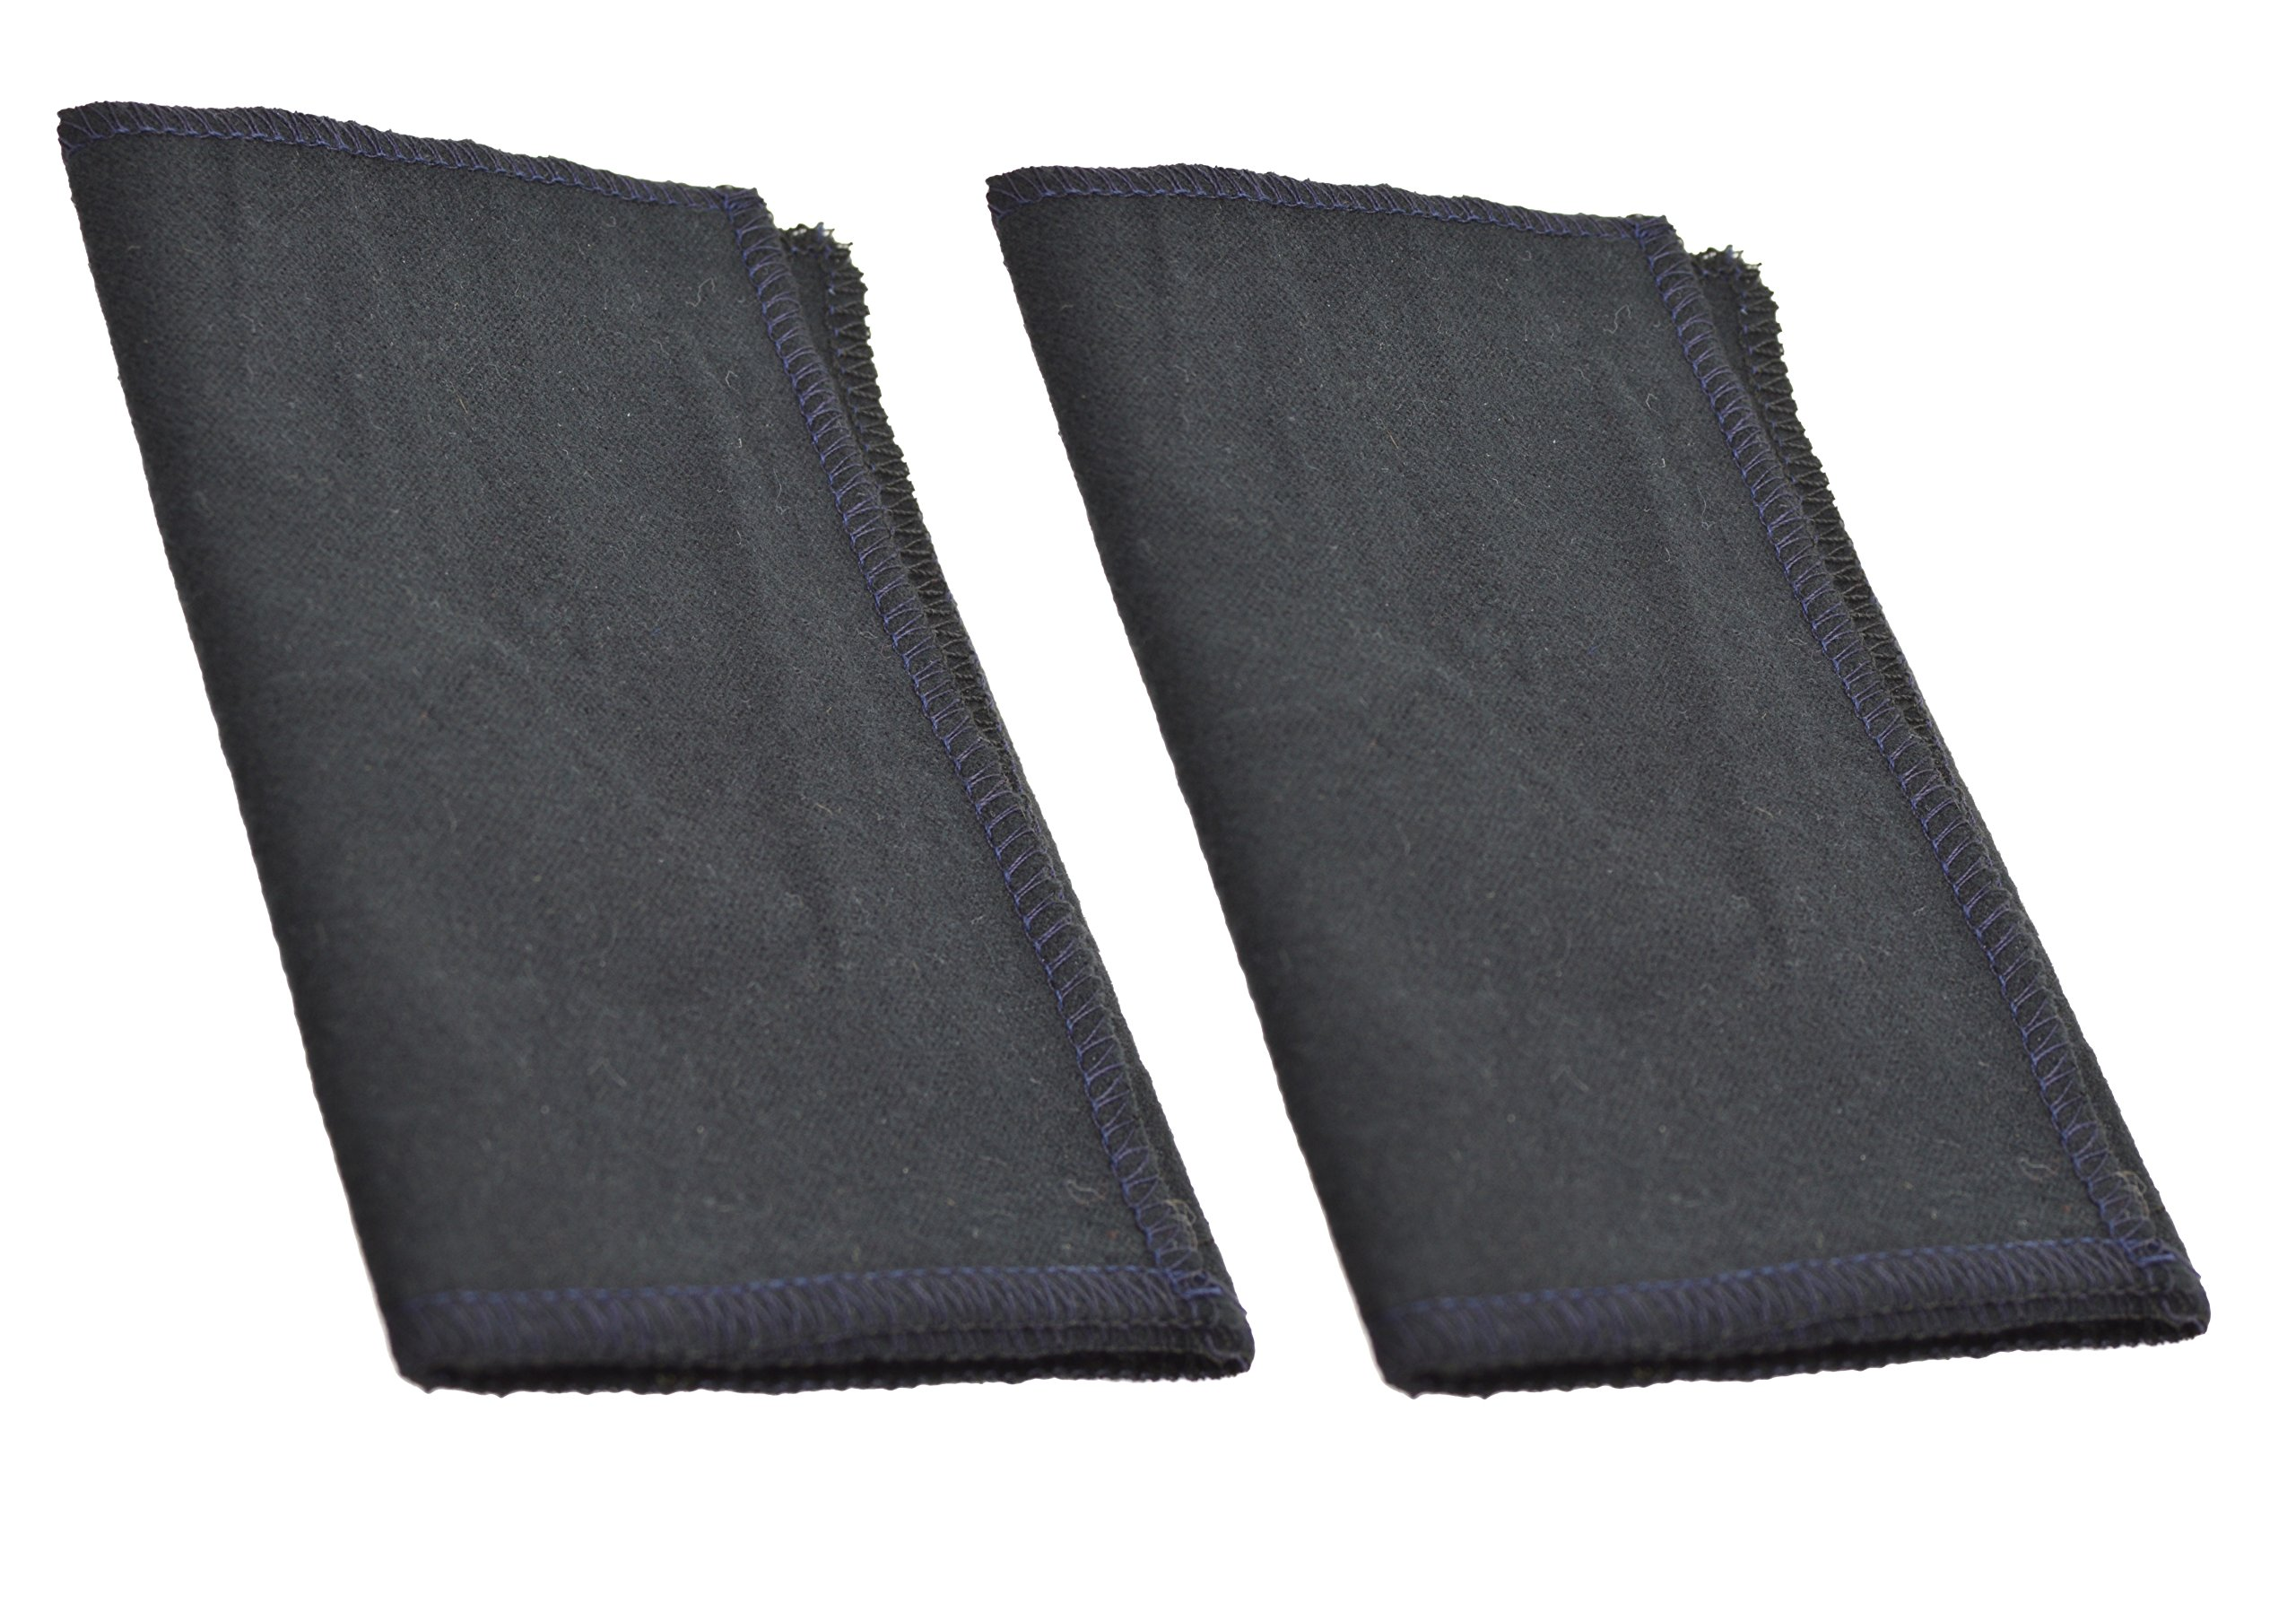 Professional Shoe Shine Cloth. Stitched on Every Sides. Made in USA. (Twin Black)